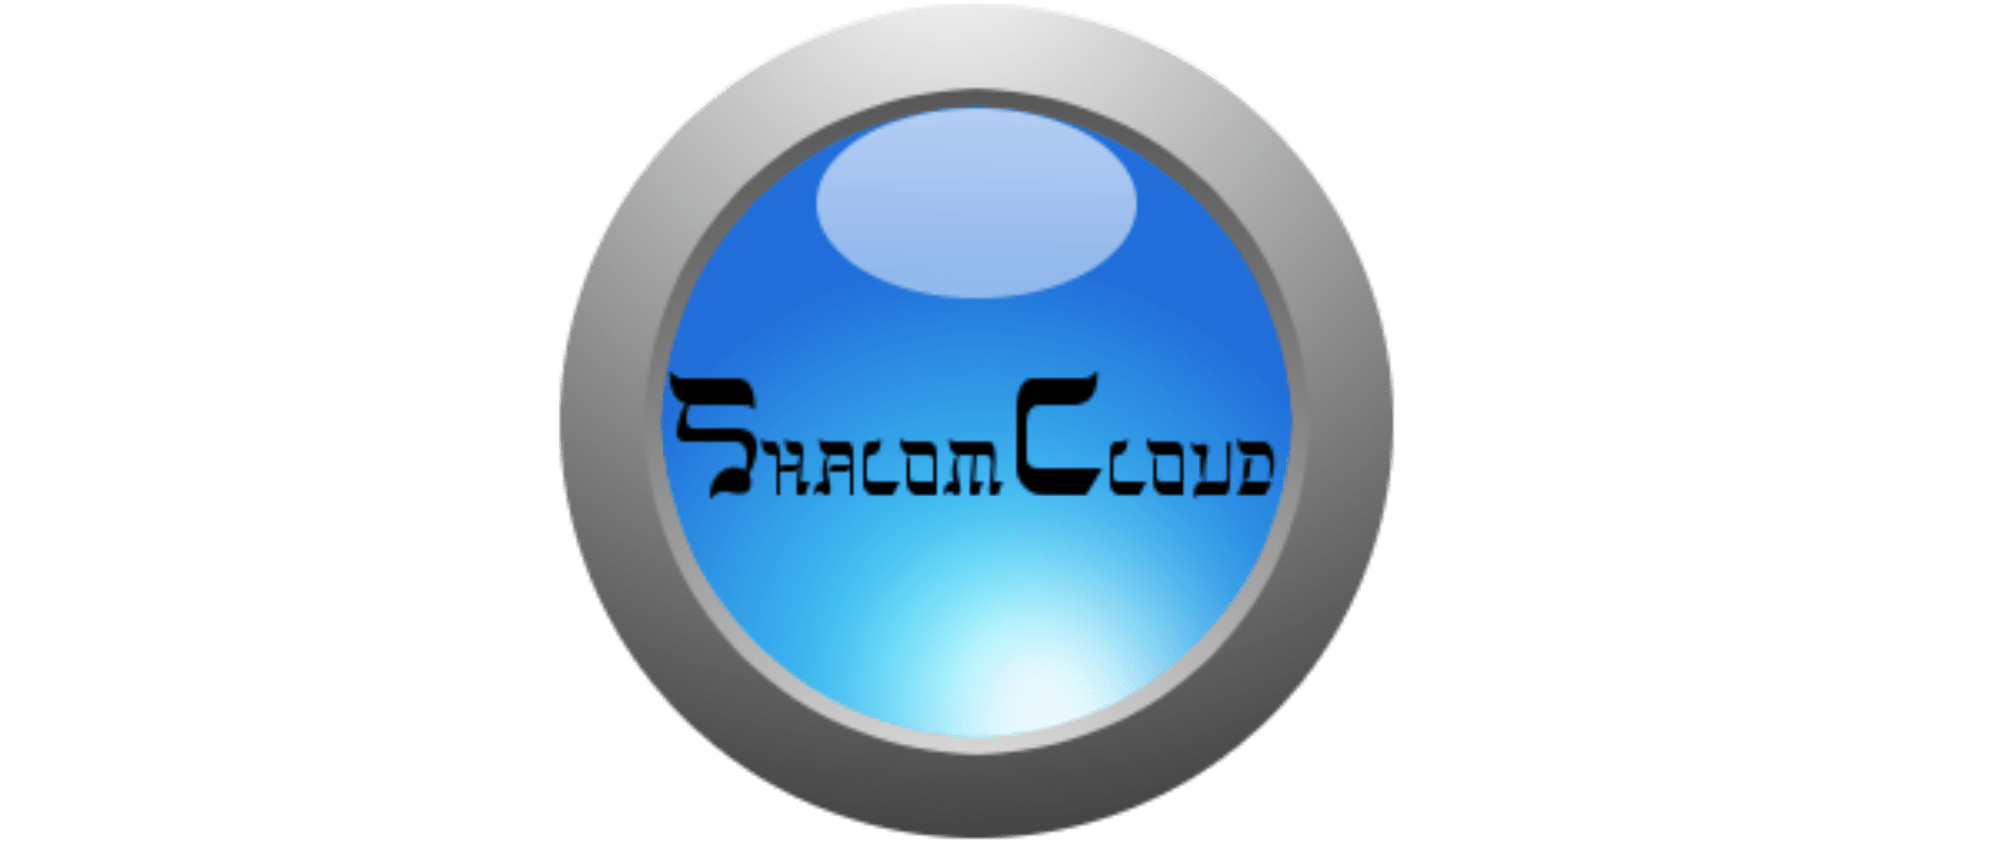 ShalomCloud – Synagogue Management Software